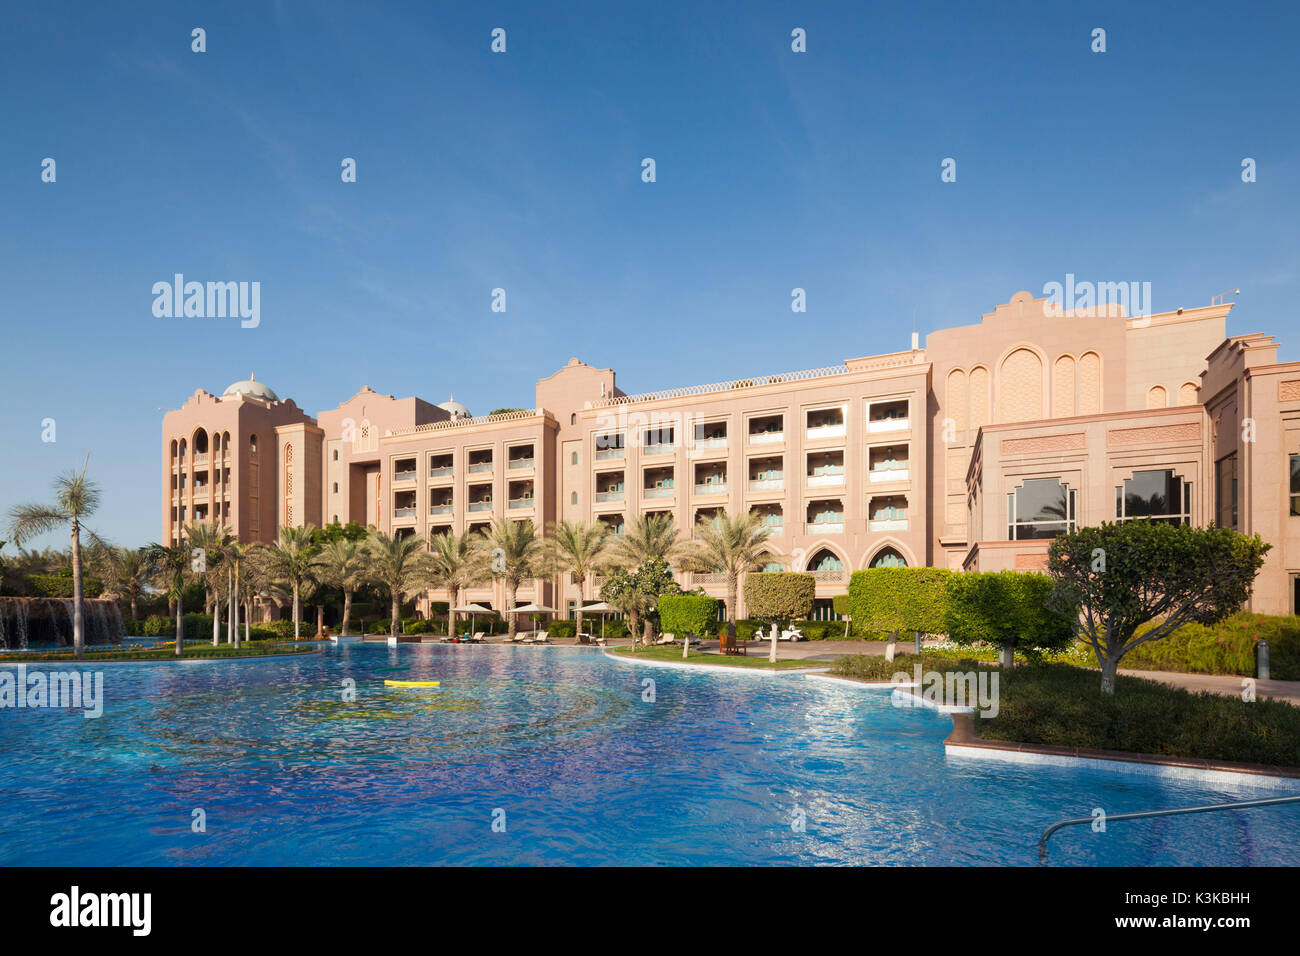 Abu Dhabi Uae Swimming Pool Stock Photos Abu Dhabi Uae Swimming Pool Stock Images Alamy